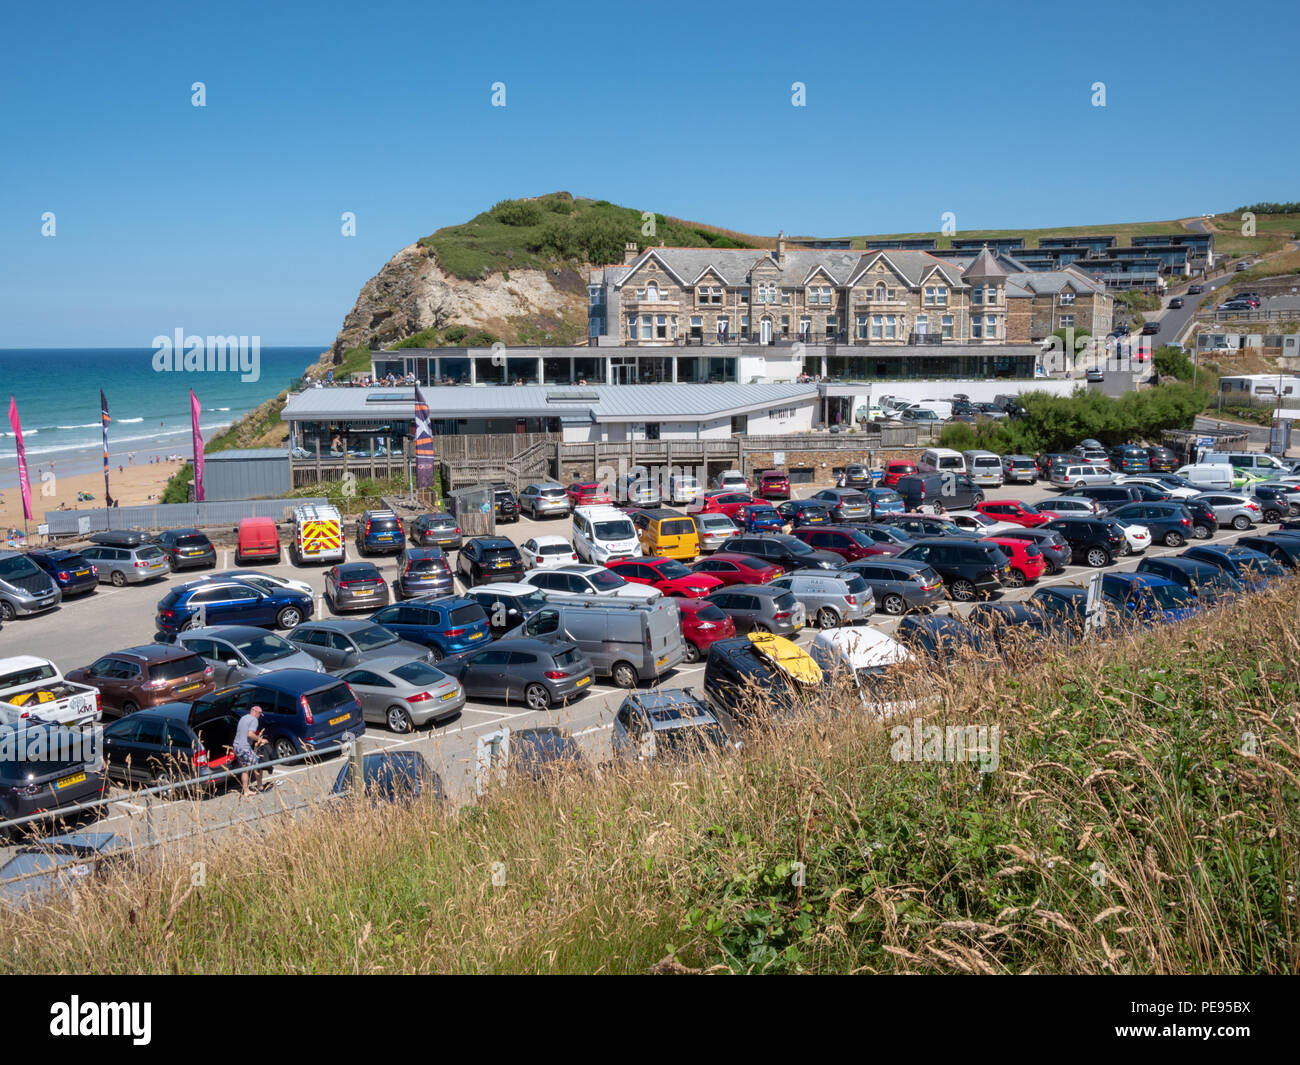 Packed , busy, crowded beach car parks at Watergate Bay near Newquay Cornwall UK in the hot summer of 2018 - Stock Image